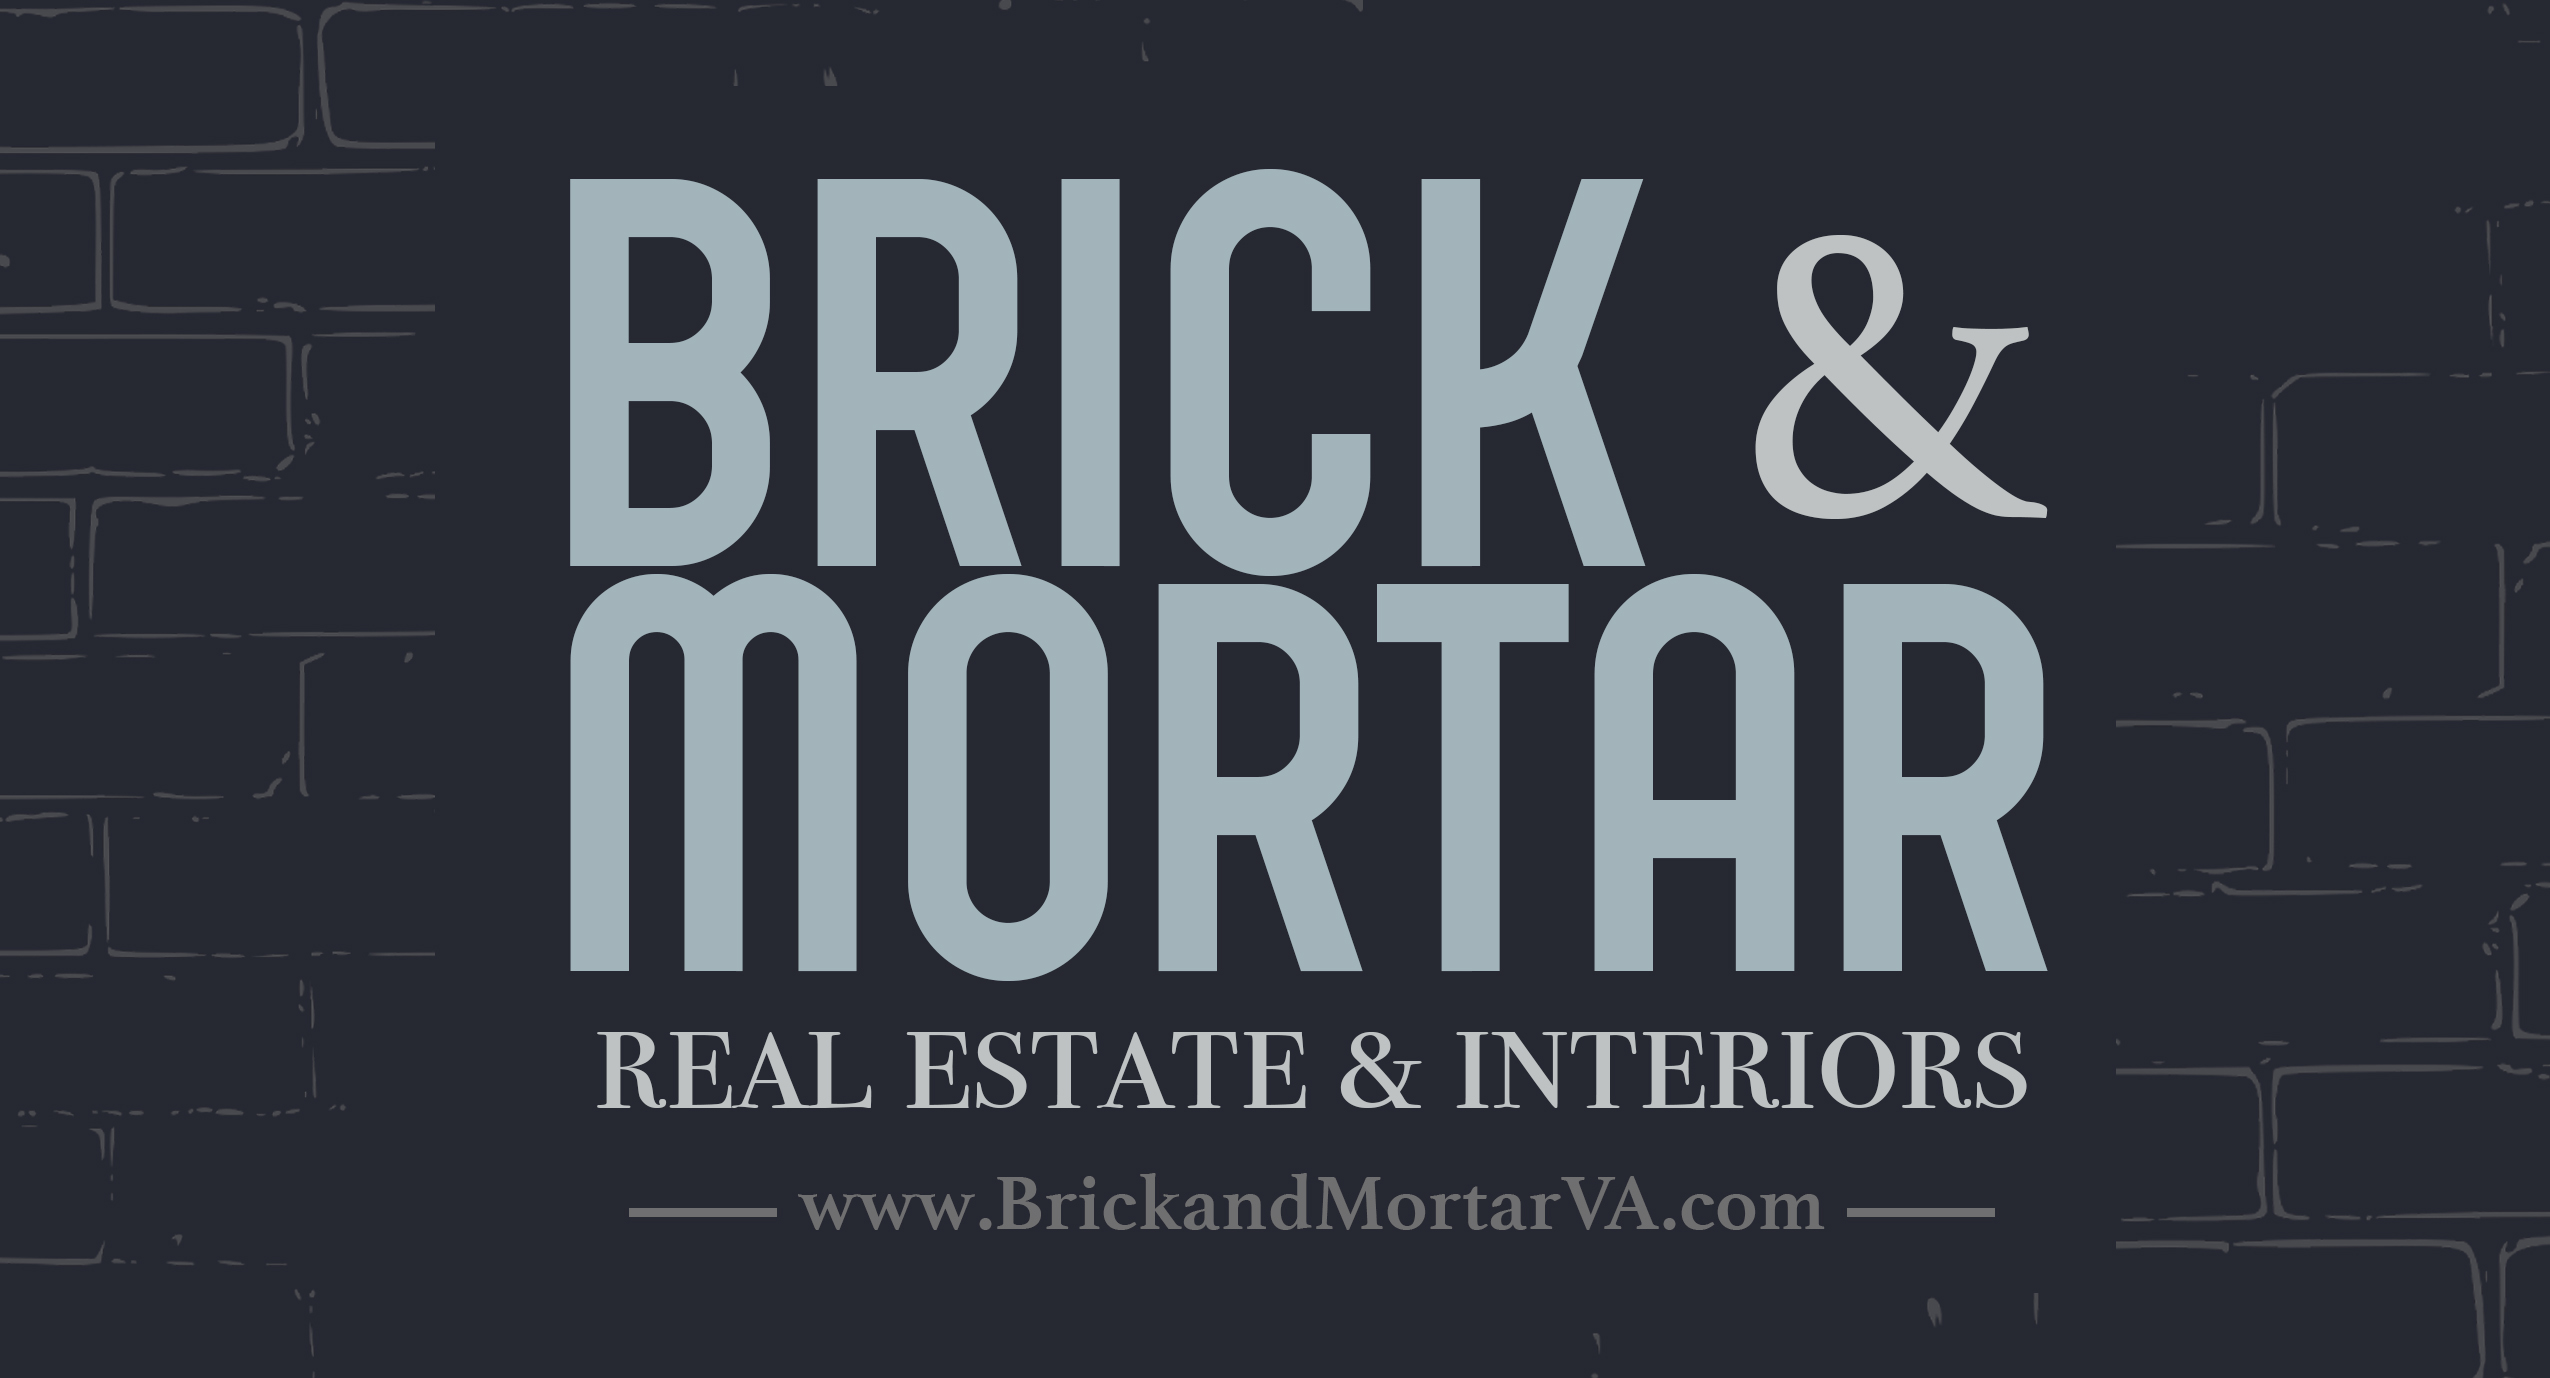 Brick & Mortar Realty